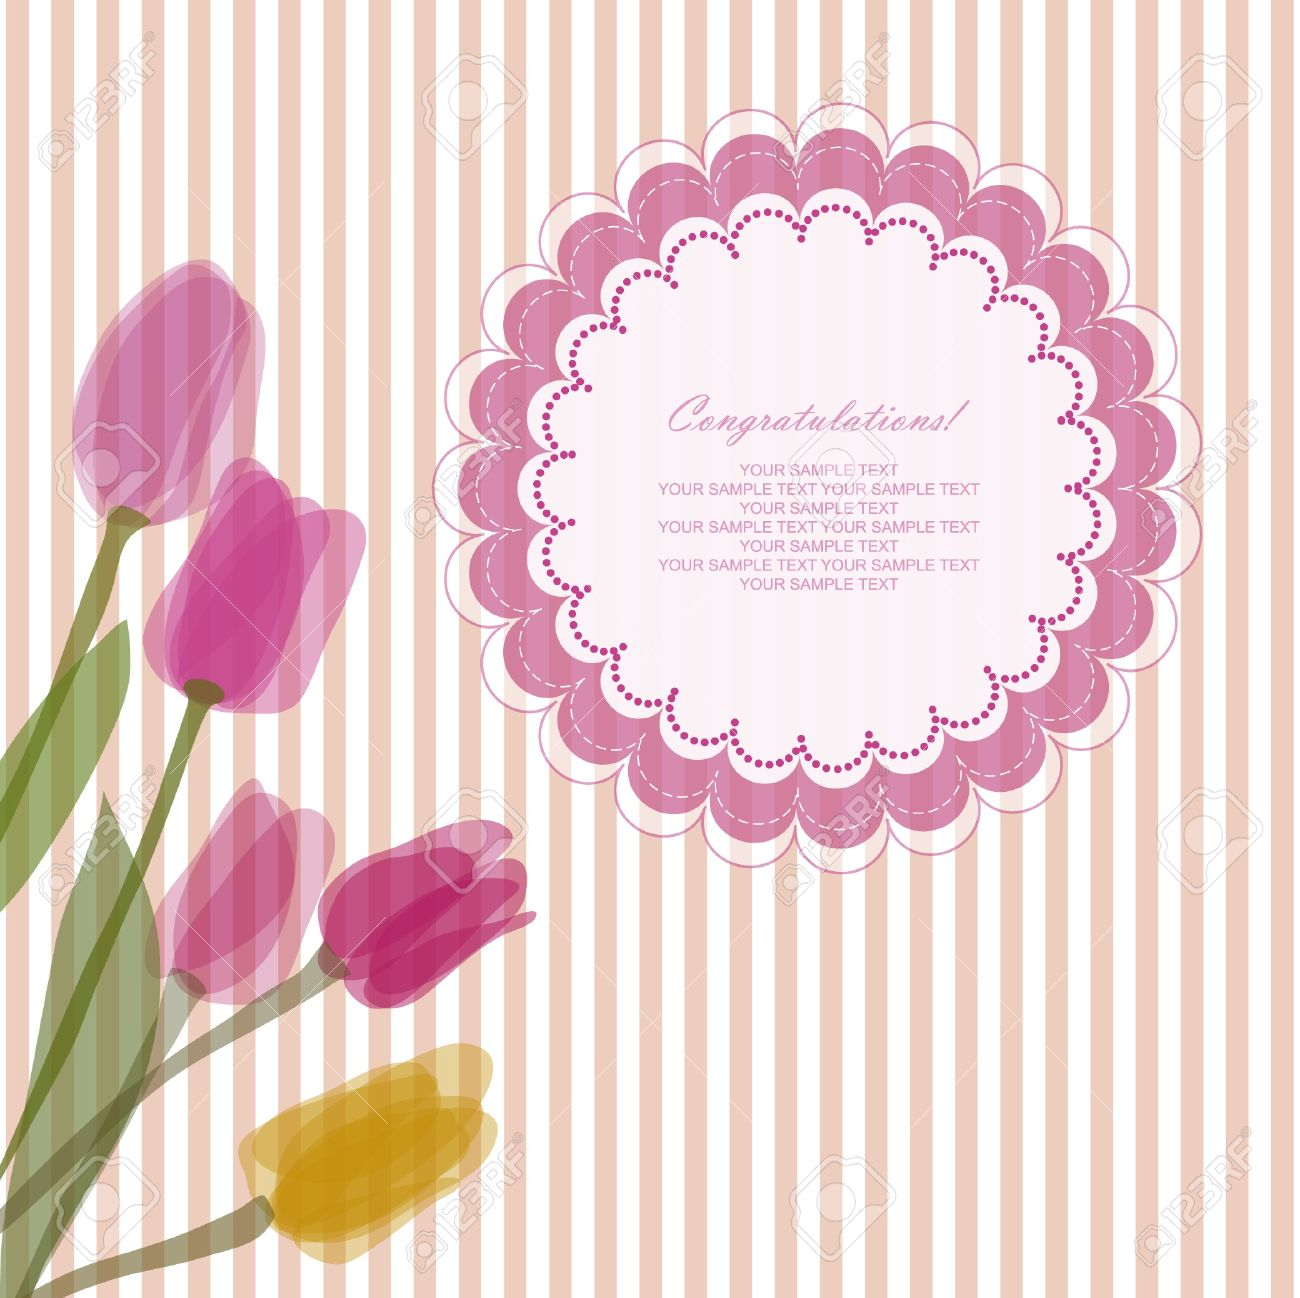 Romantic Baby Retro Card With Your Text For Invitation, Wedding ...